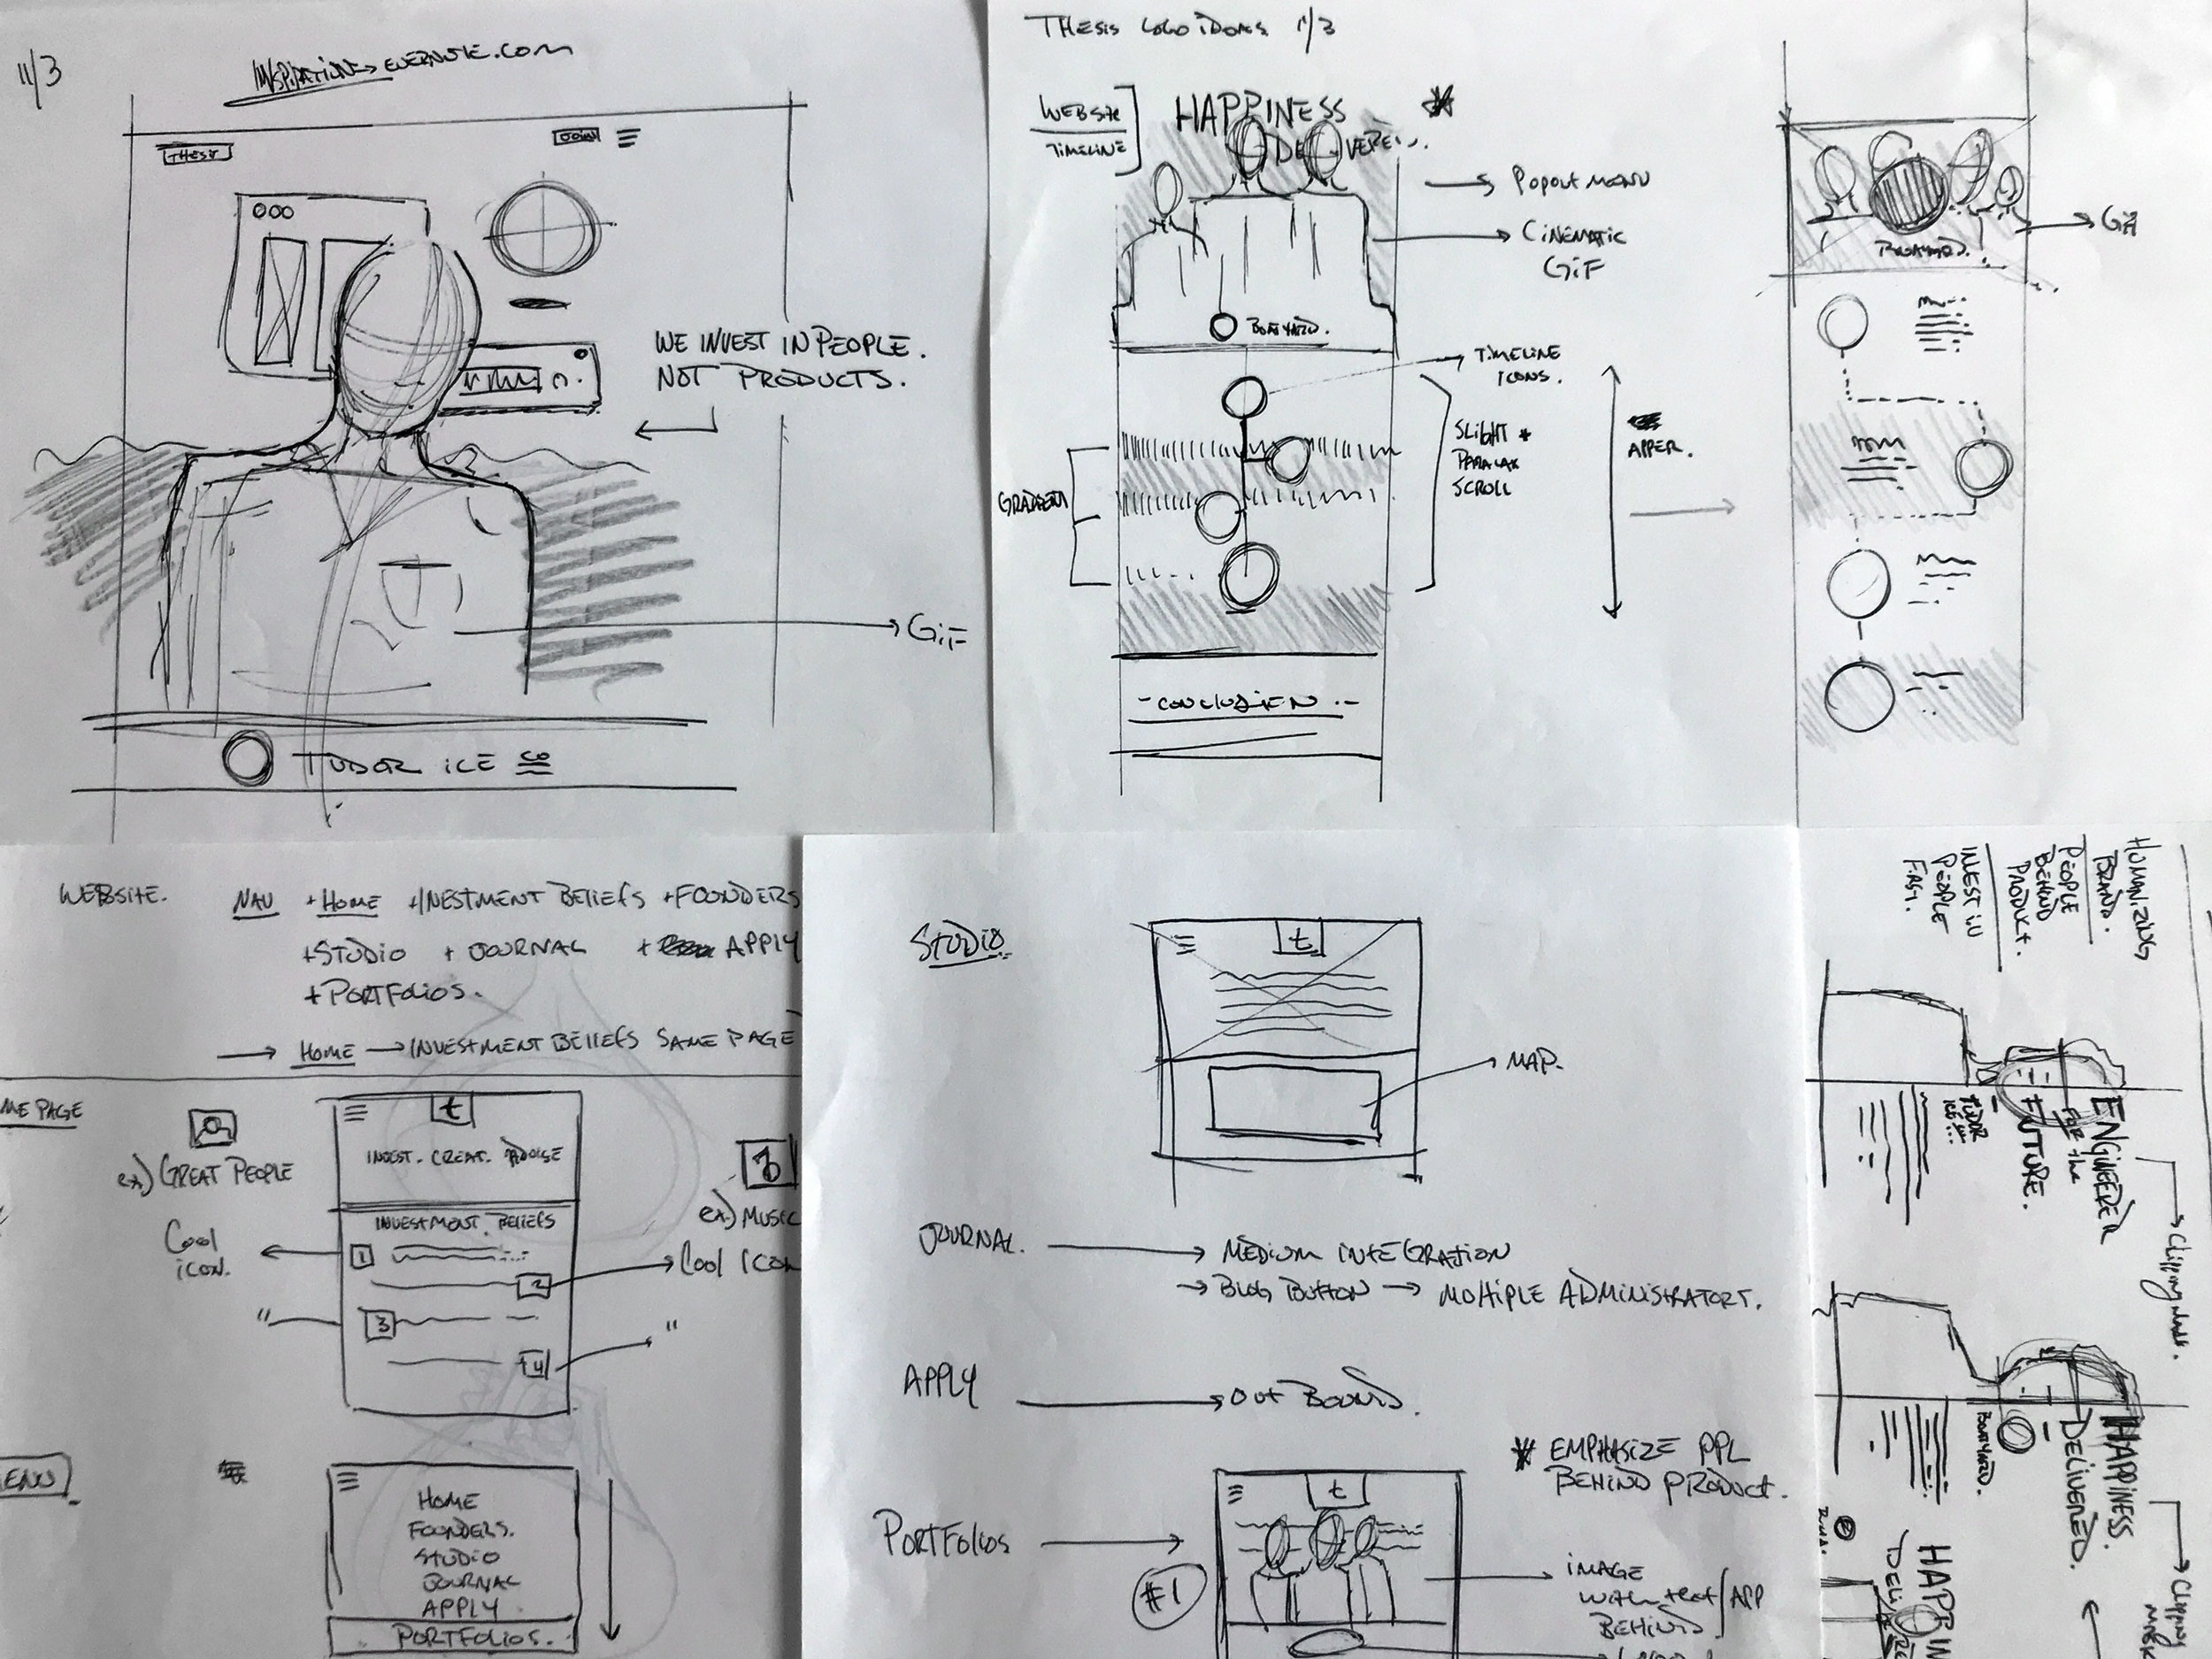 thesis_web